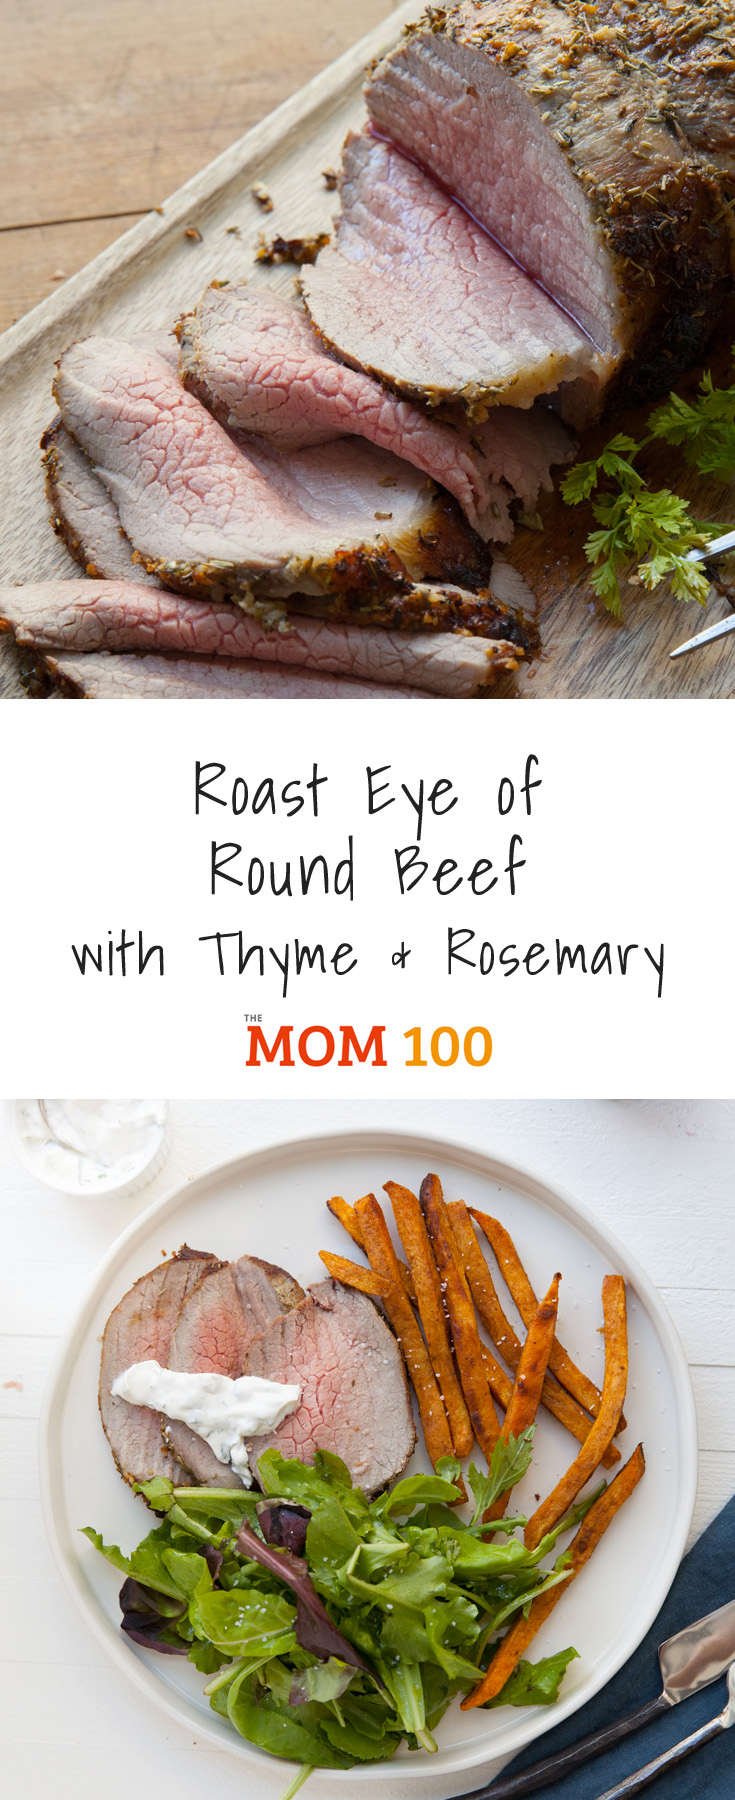 This incredibly simple Roast Eye of Round Beef recipe with thyme and rosemary has a terrific flavorful crust, and tender, pink, juicy meat inside.